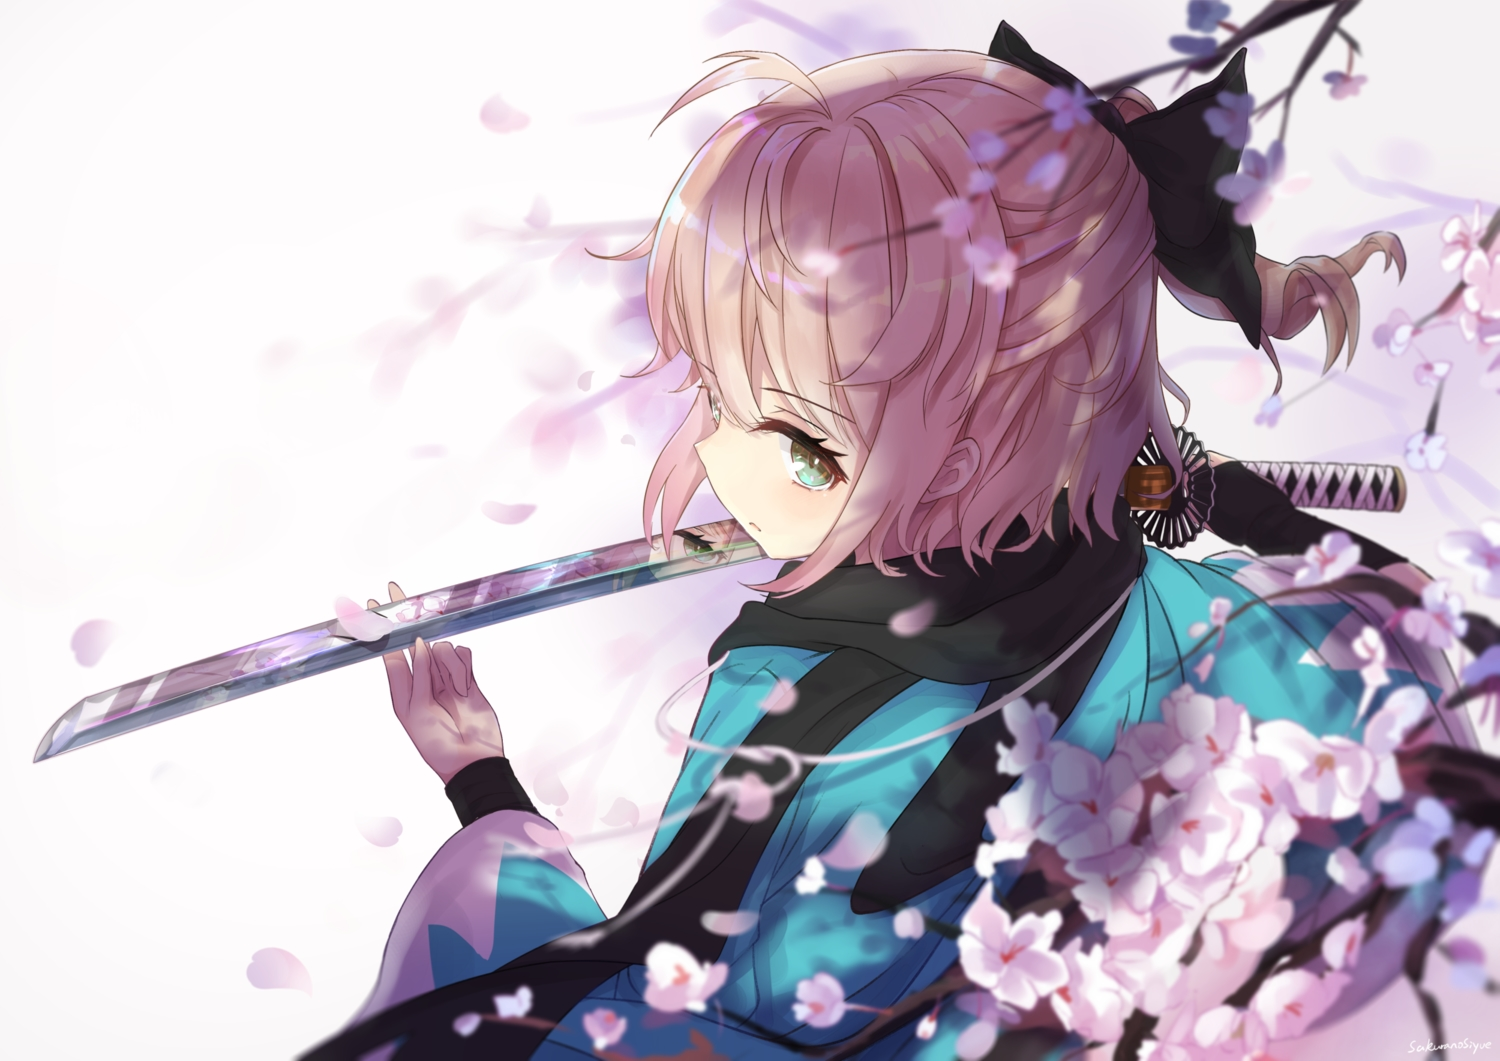 blonde_hair cherry_blossoms close fate/grand_order fate_(series) flowers green_eyes japanese_clothes katana kimono okita_souji_(fate) petals ponytail reflection sakurano_shiyue scarf short_hair signed sword weapon